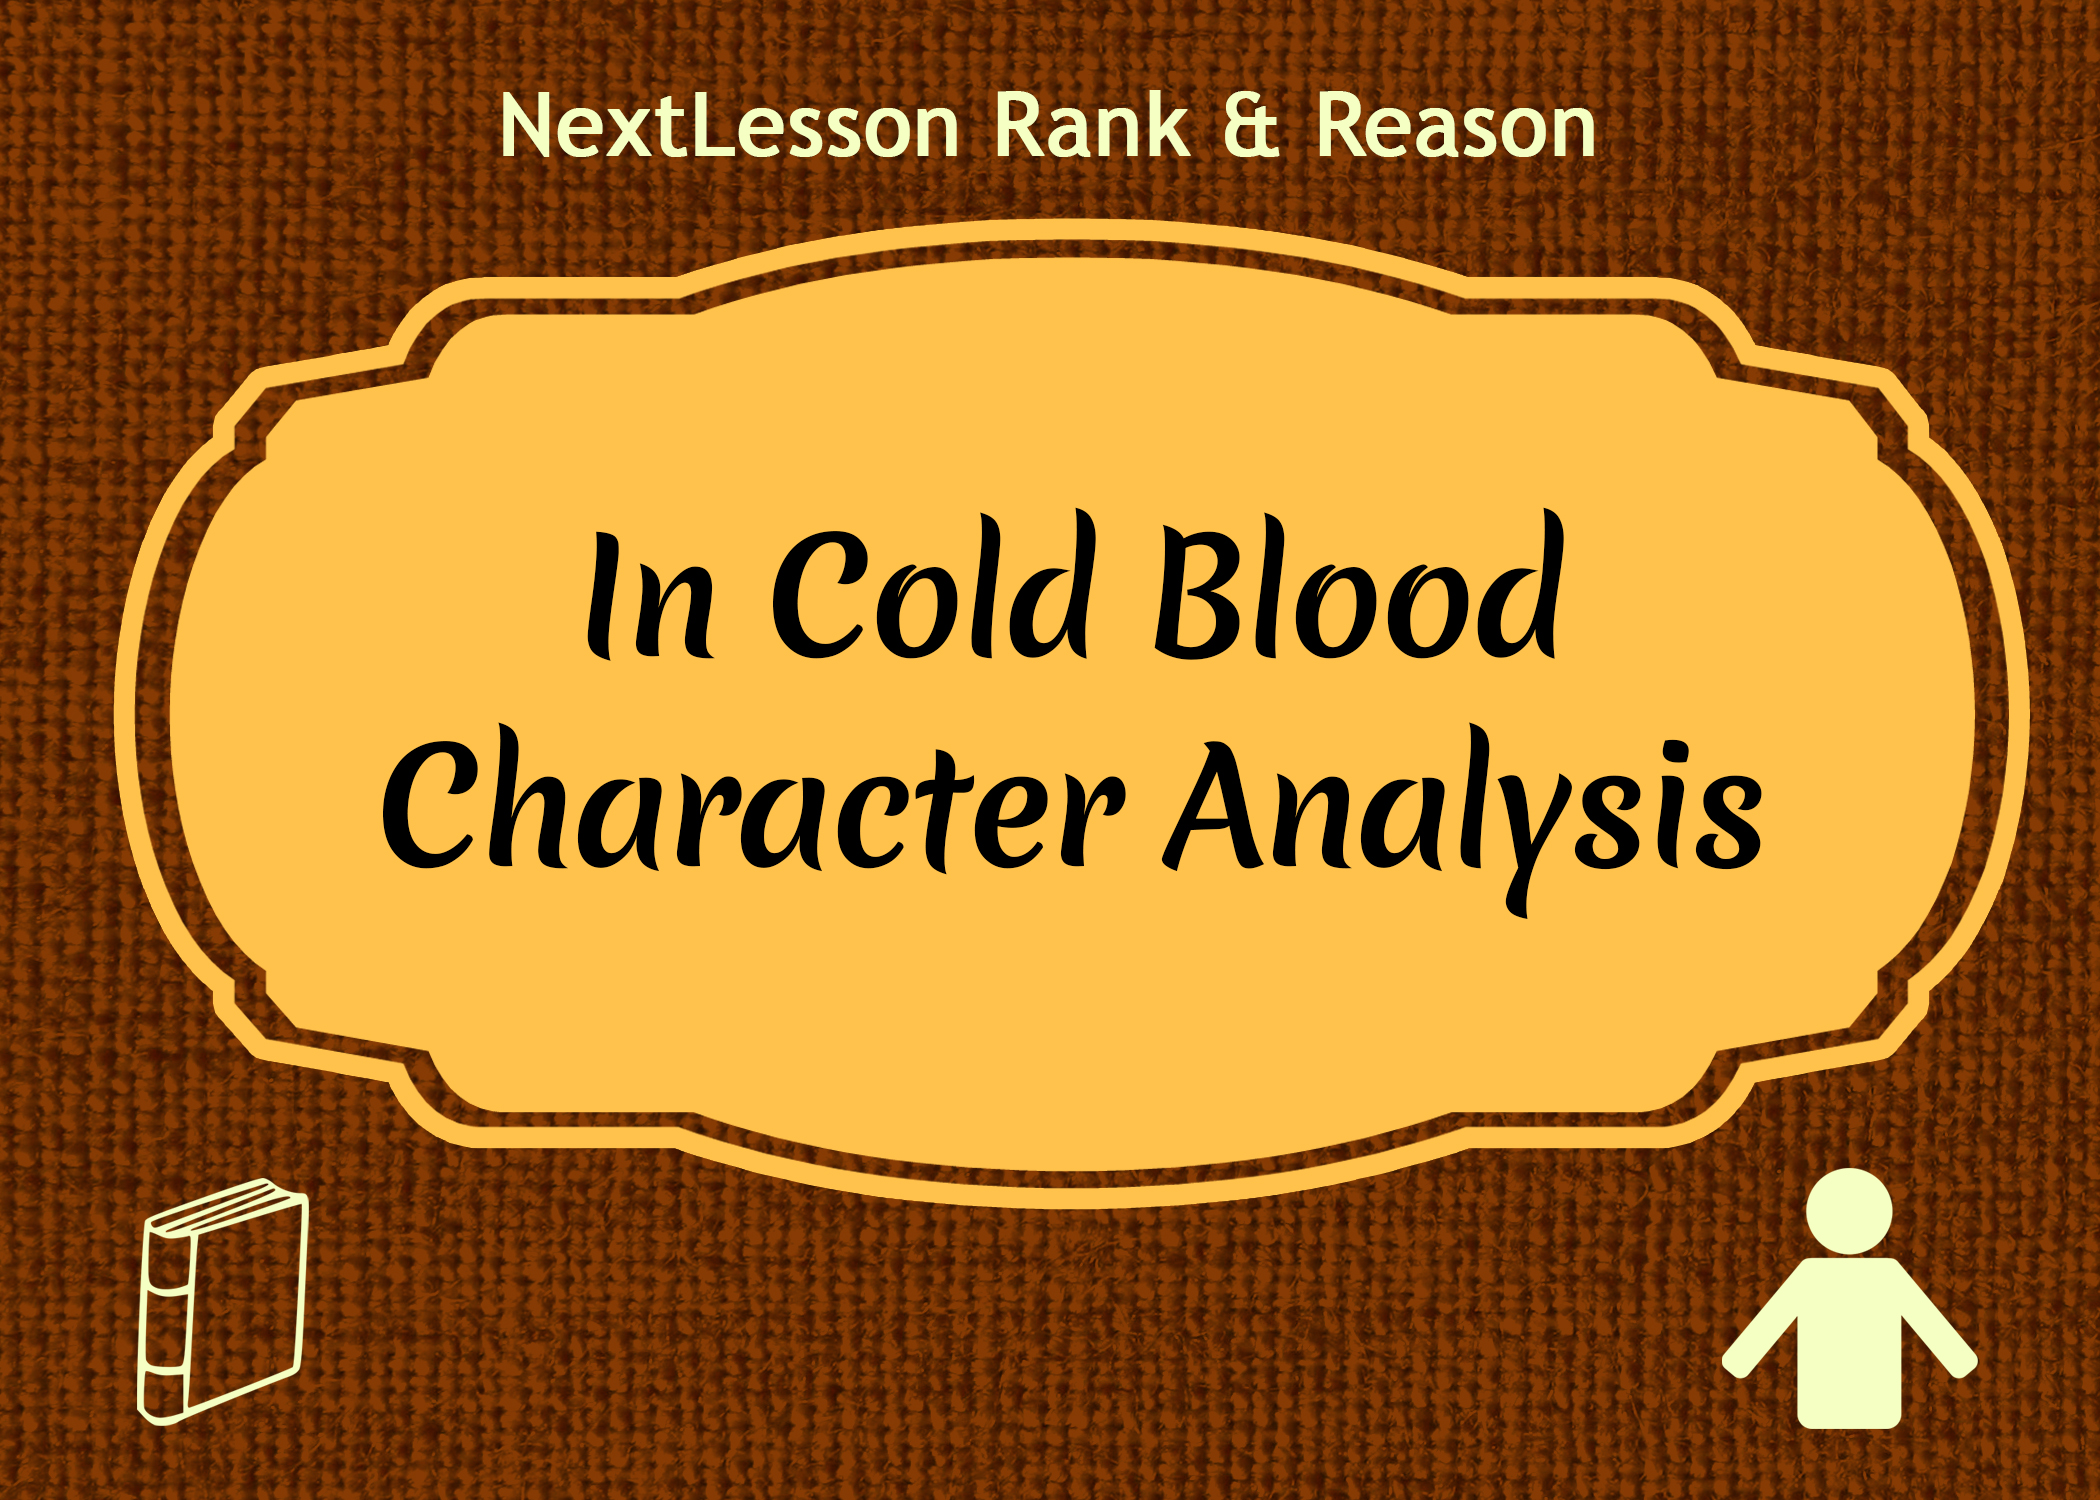 capote analysis In cold blood analysis essays in cold blood by truman capote is a thrilling novel as well as a documentary of an historical american crime the author doesn't just present the facts of the case, but through his book he makes you feel as if you know both murderers and victims on a personal level.